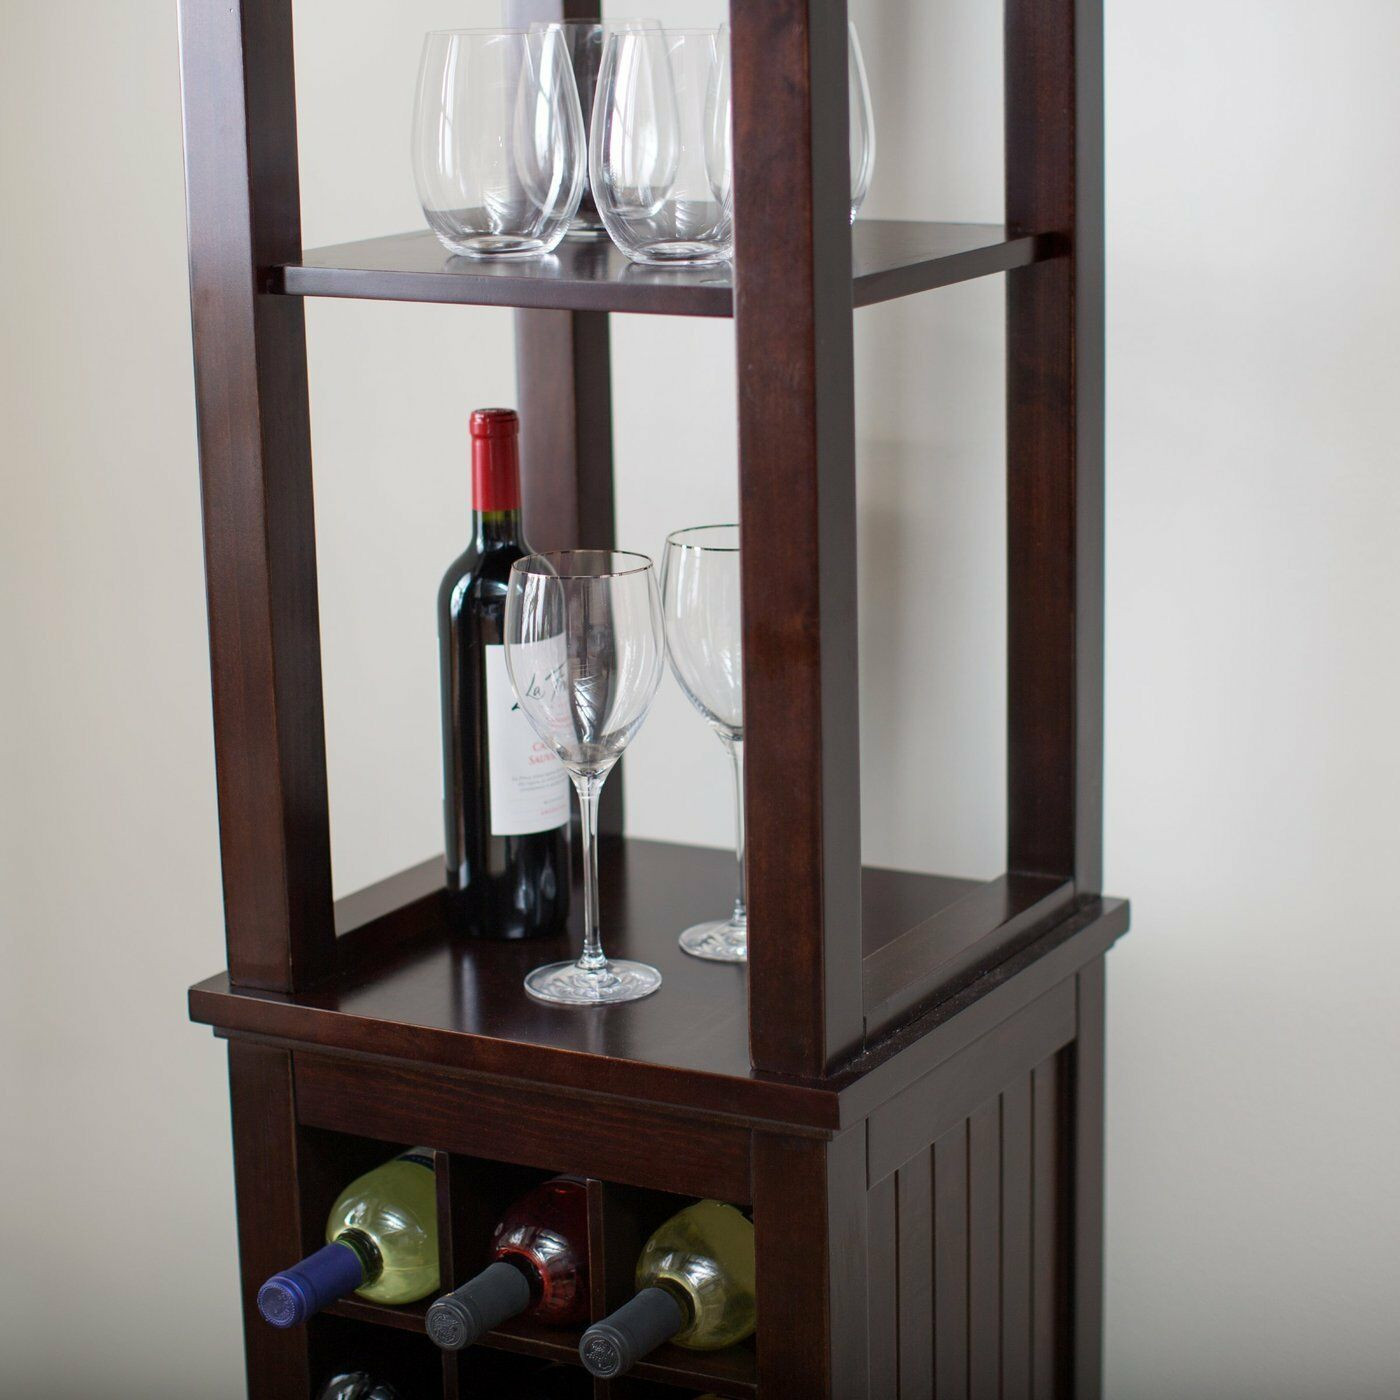 Best ideas about Cabinet With Wine Rack . Save or Pin Wine Rack Cabinet Bottle Holder Storage Stand Tower Tall Now.